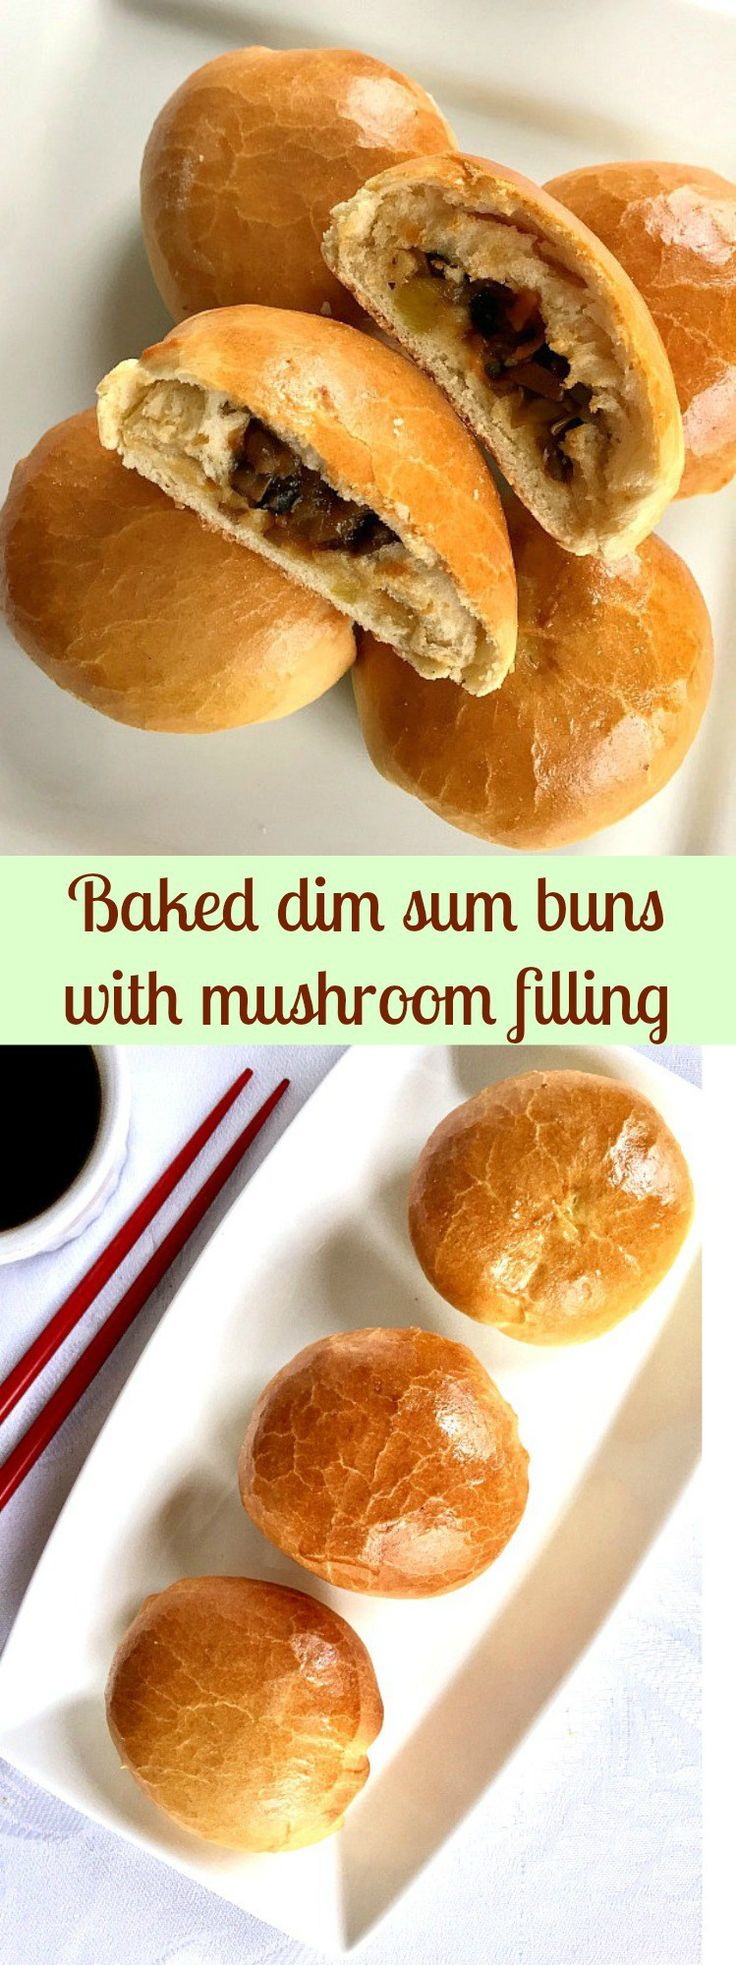 Baked dim sum buns with mushroom filling, a true Chinese delicacy. Perfect vegetarian option if you are looking for a nice recipe.